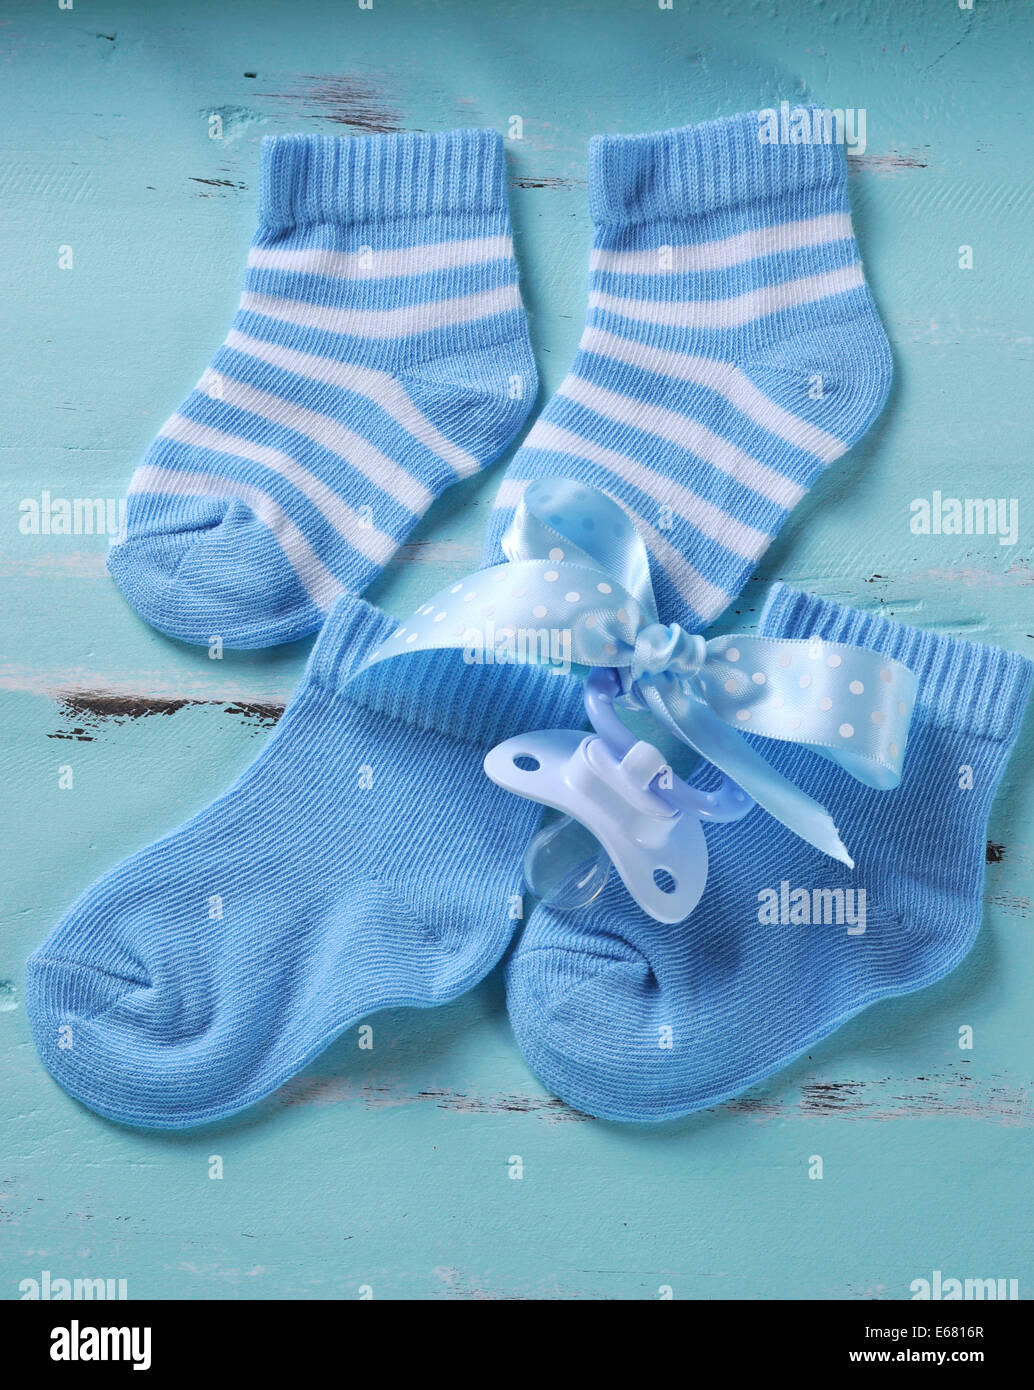 Shabby Chic Vintage Nursery Baby Boy Nursery Blue And White Socks And Dummy Pacifier On Aqua